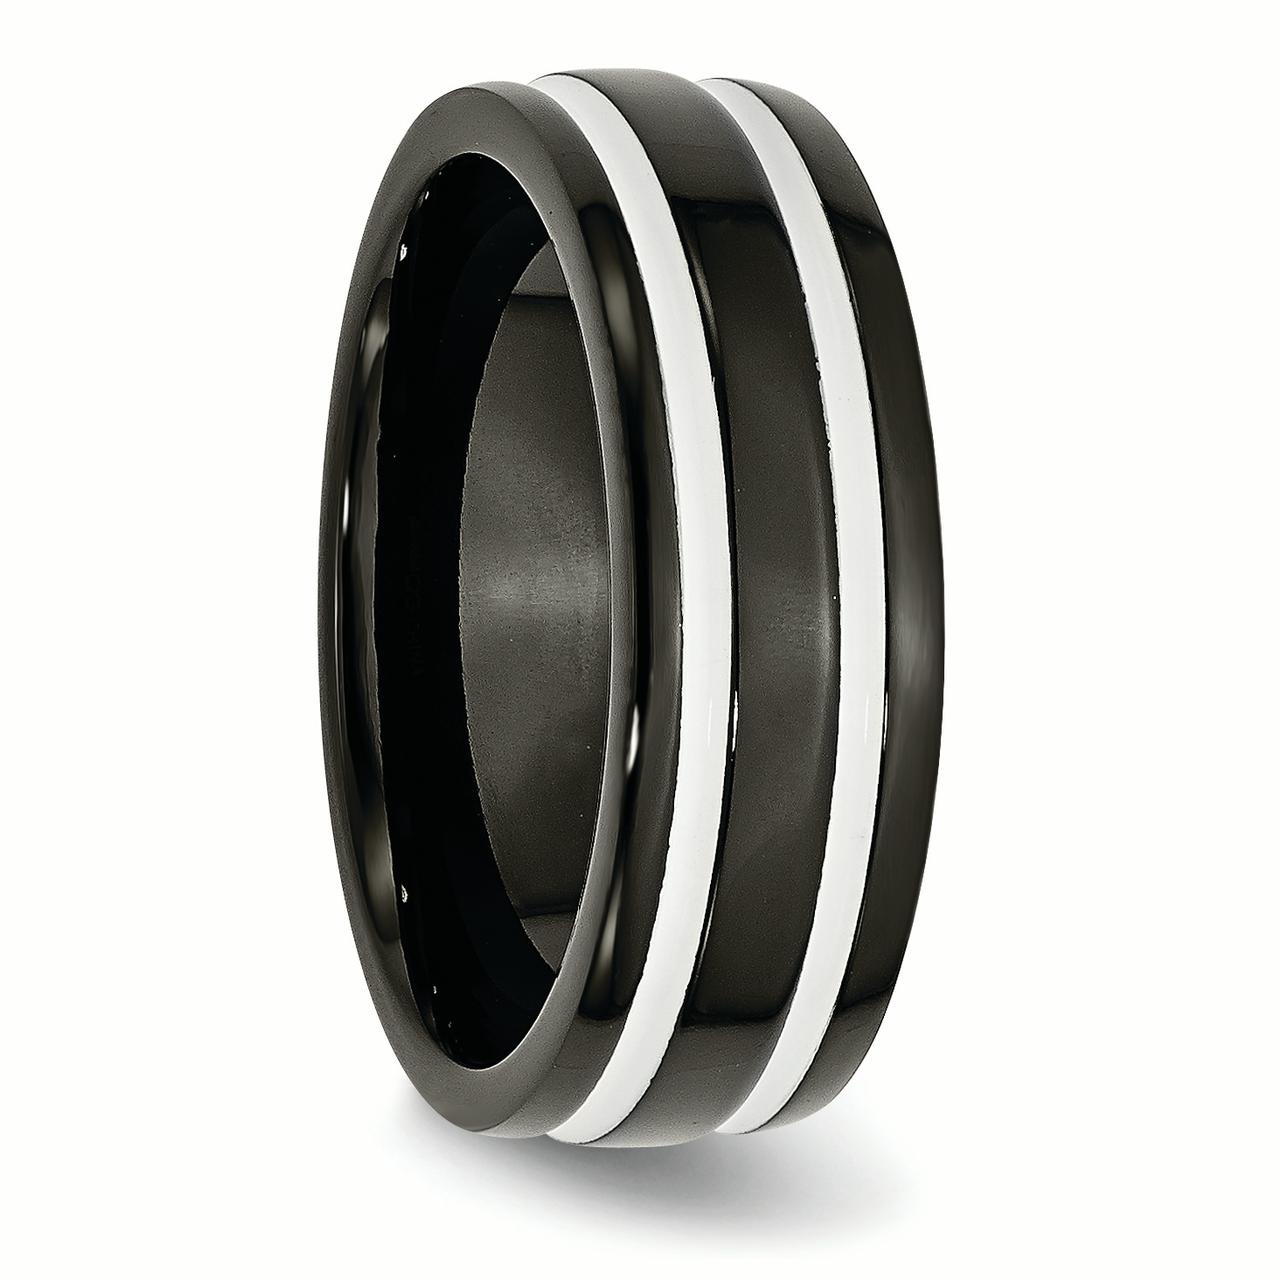 Titanium 8mm Black Plated Wedding Ring Band Size 8.50 Fashion Jewelry Gifts For Women For Her - image 4 of 6